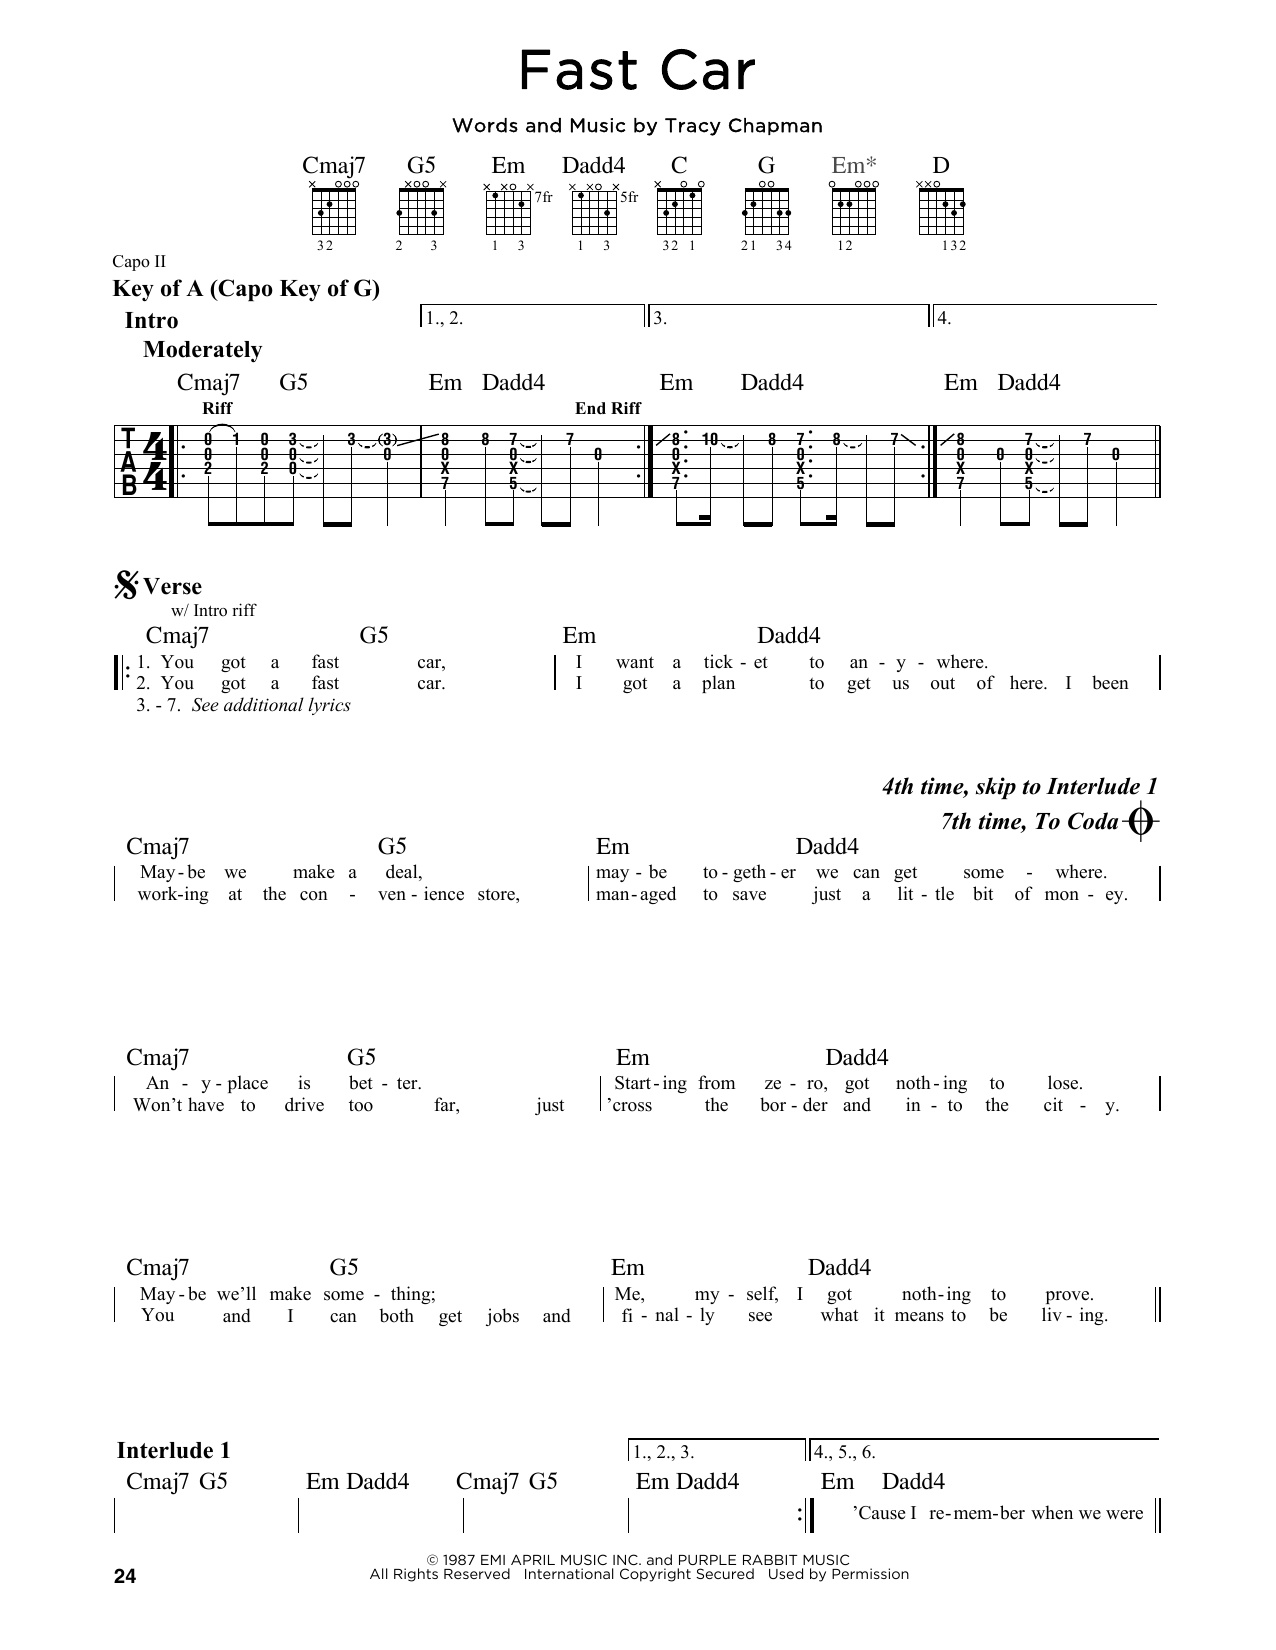 Fast Car Sheet Music Direct - Tracy chapman fast car guitar